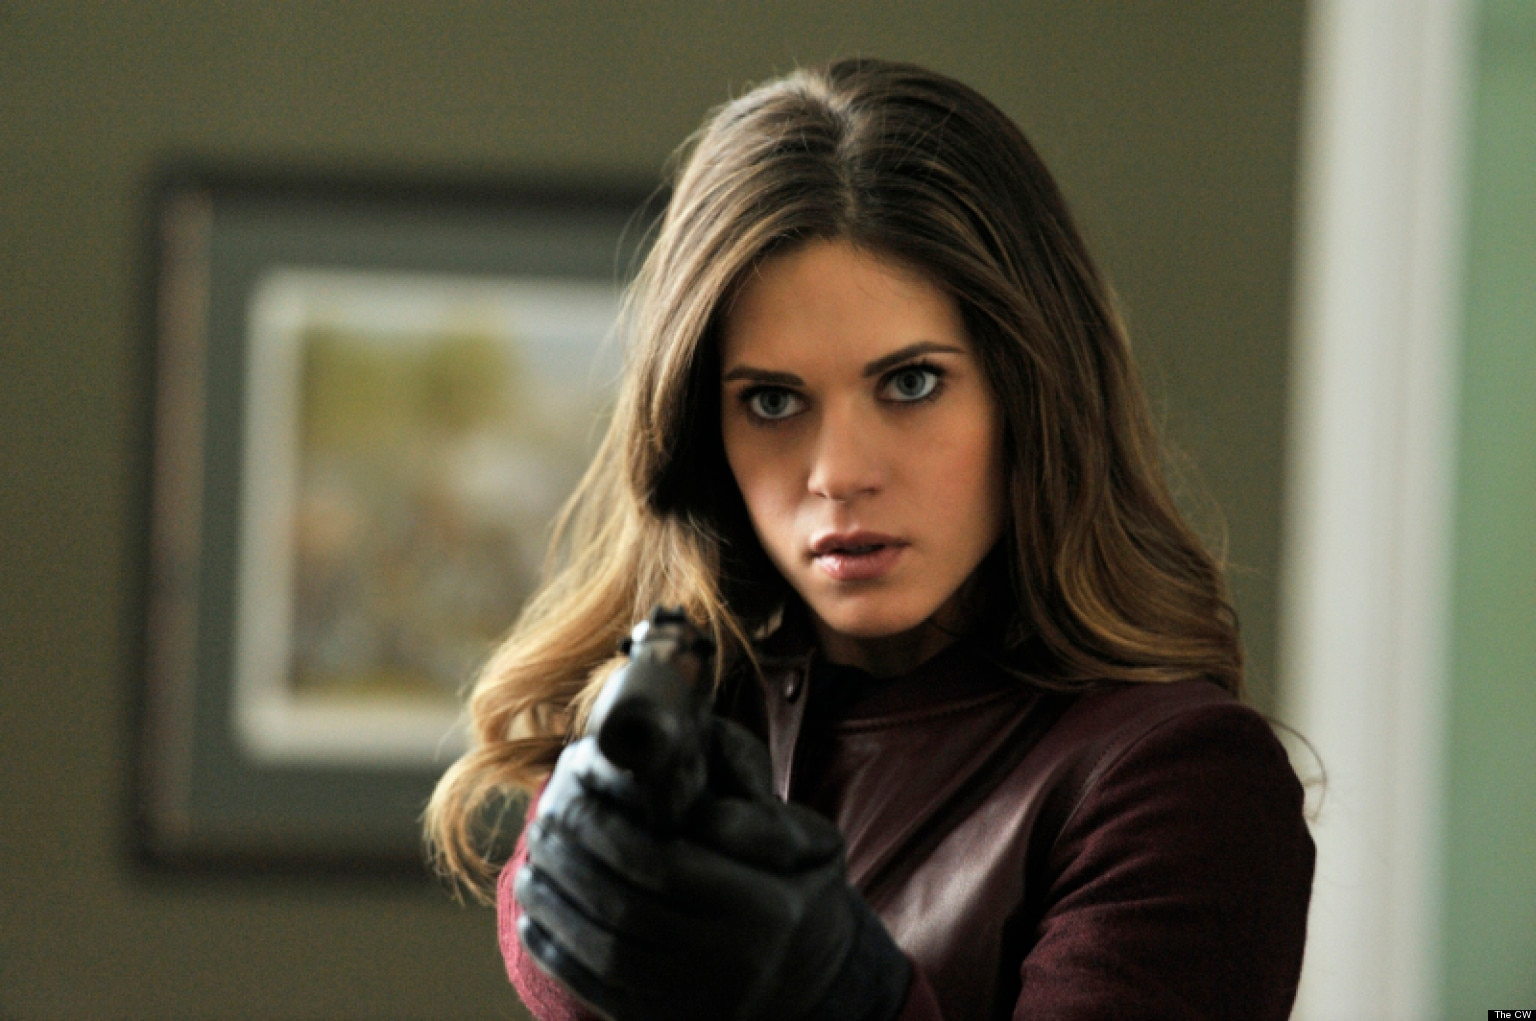 lyndsy fonseca giflyndsy fonseca gif, lyndsy fonseca tumblr, lyndsy fonseca gif hunt, lyndsy fonseca how i met your mother, lyndsy fonseca wedding, lyndsy fonseca wiki, lyndsy fonseca gif tumblr, lyndsy fonseca listal, lyndsy fonseca tattoo, lyndsy fonseca gallery, lyndsy fonseca vk, lyndsy fonseca noah bean, lyndsy fonseca fansite, lyndsy fonseca height, lyndsy fonseca interview, lyndsy fonseca fan, lyndsy fonseca wallpaper, lyndsy fonseca instagram, lyndsy fonseca house, lyndsy fonseca imdb